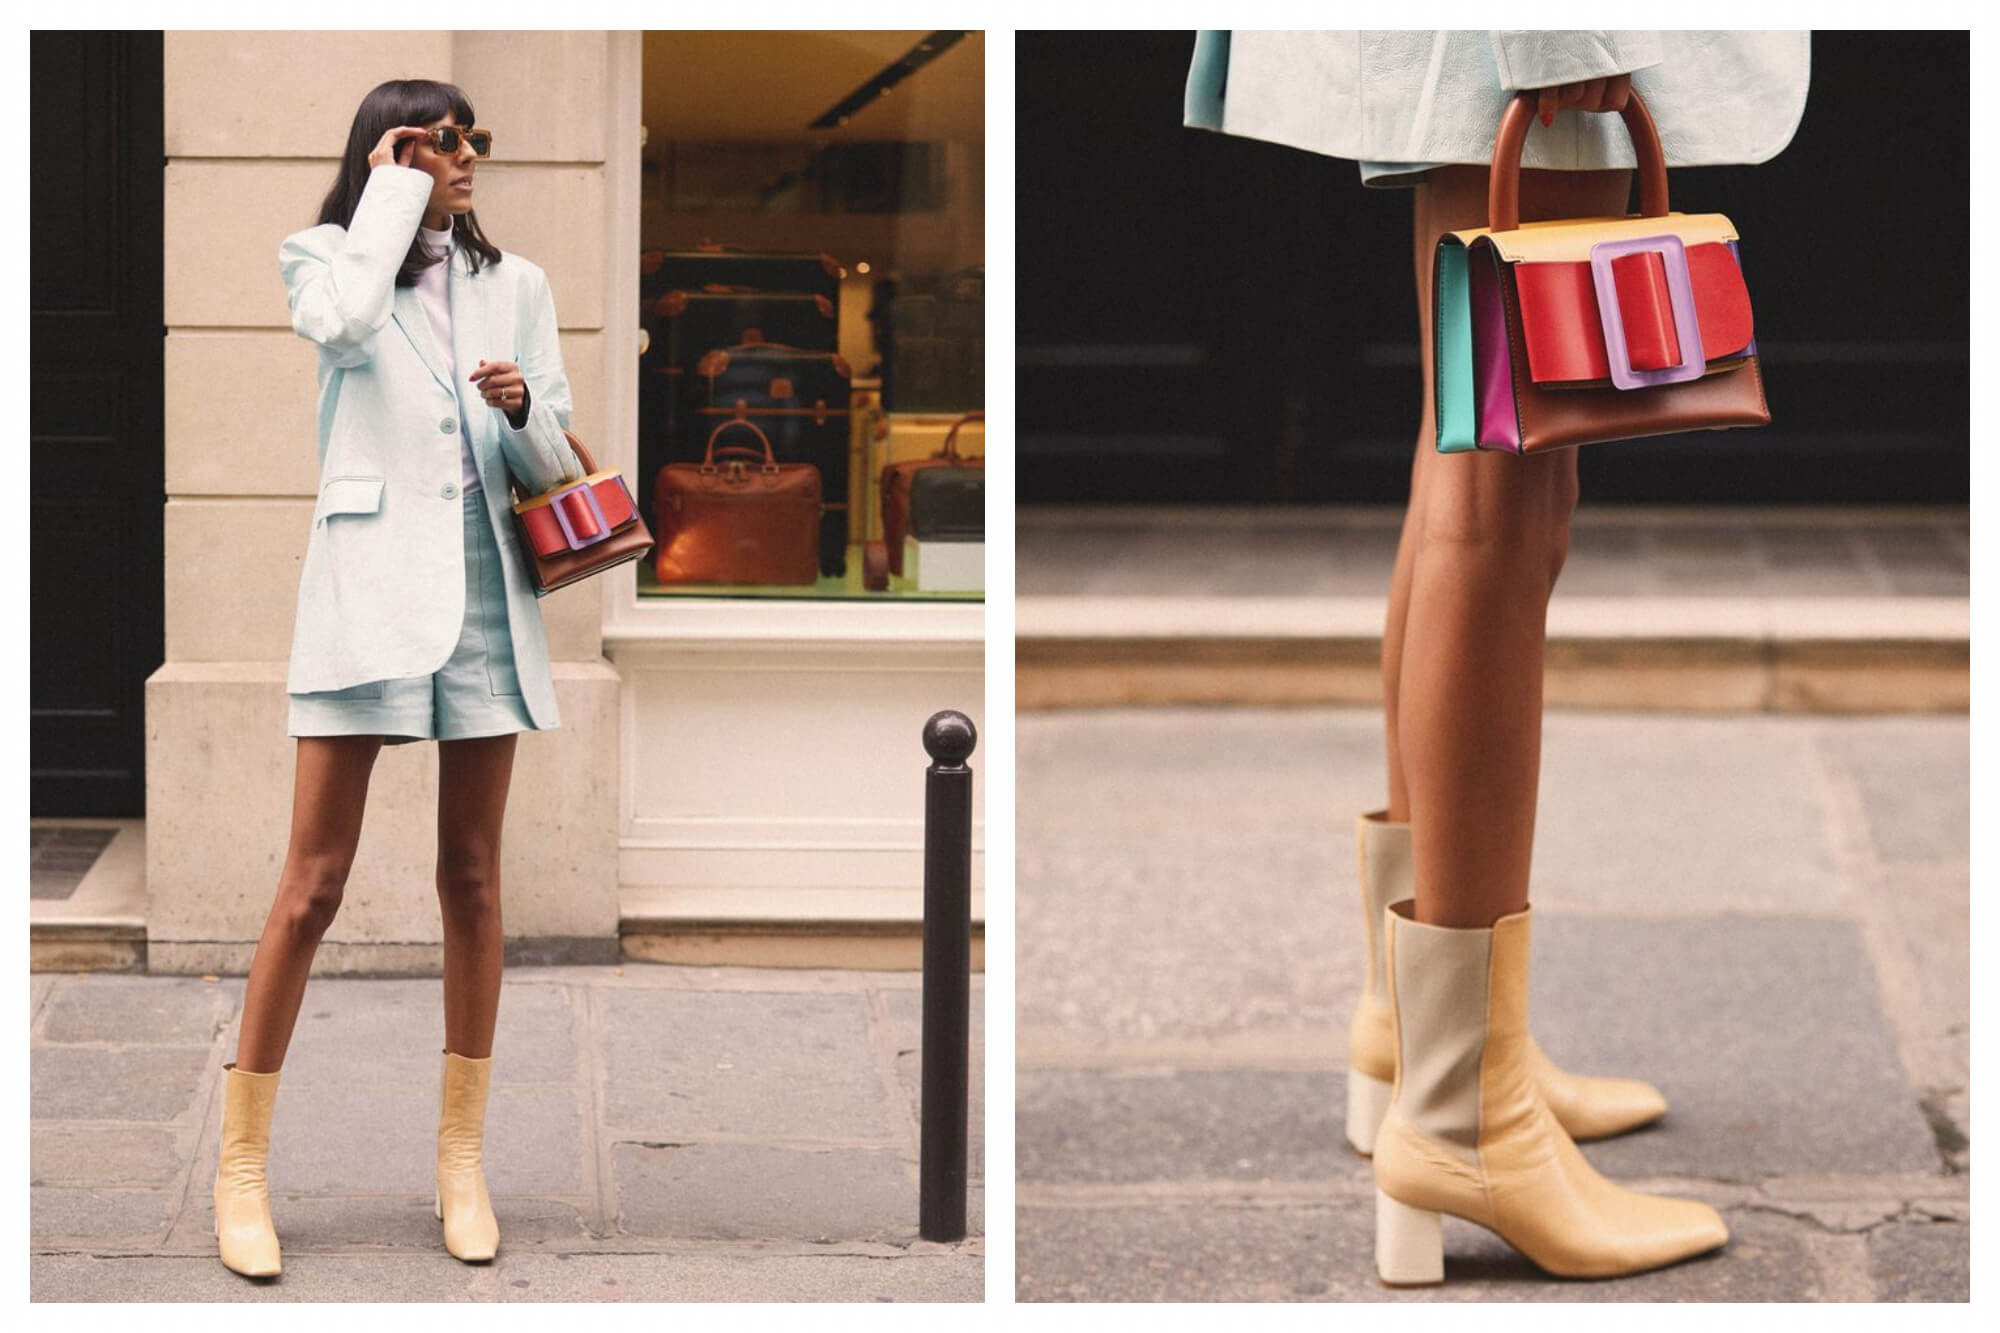 Left: a woman standing on a Parisian footpath in front of a shop window. She's wearing a pale blue blazer and matching shorts, with sunglasses, a multicolour handbag, and tan heeled boots. Right: a close up of the same woman's legs with the handbag and boots.